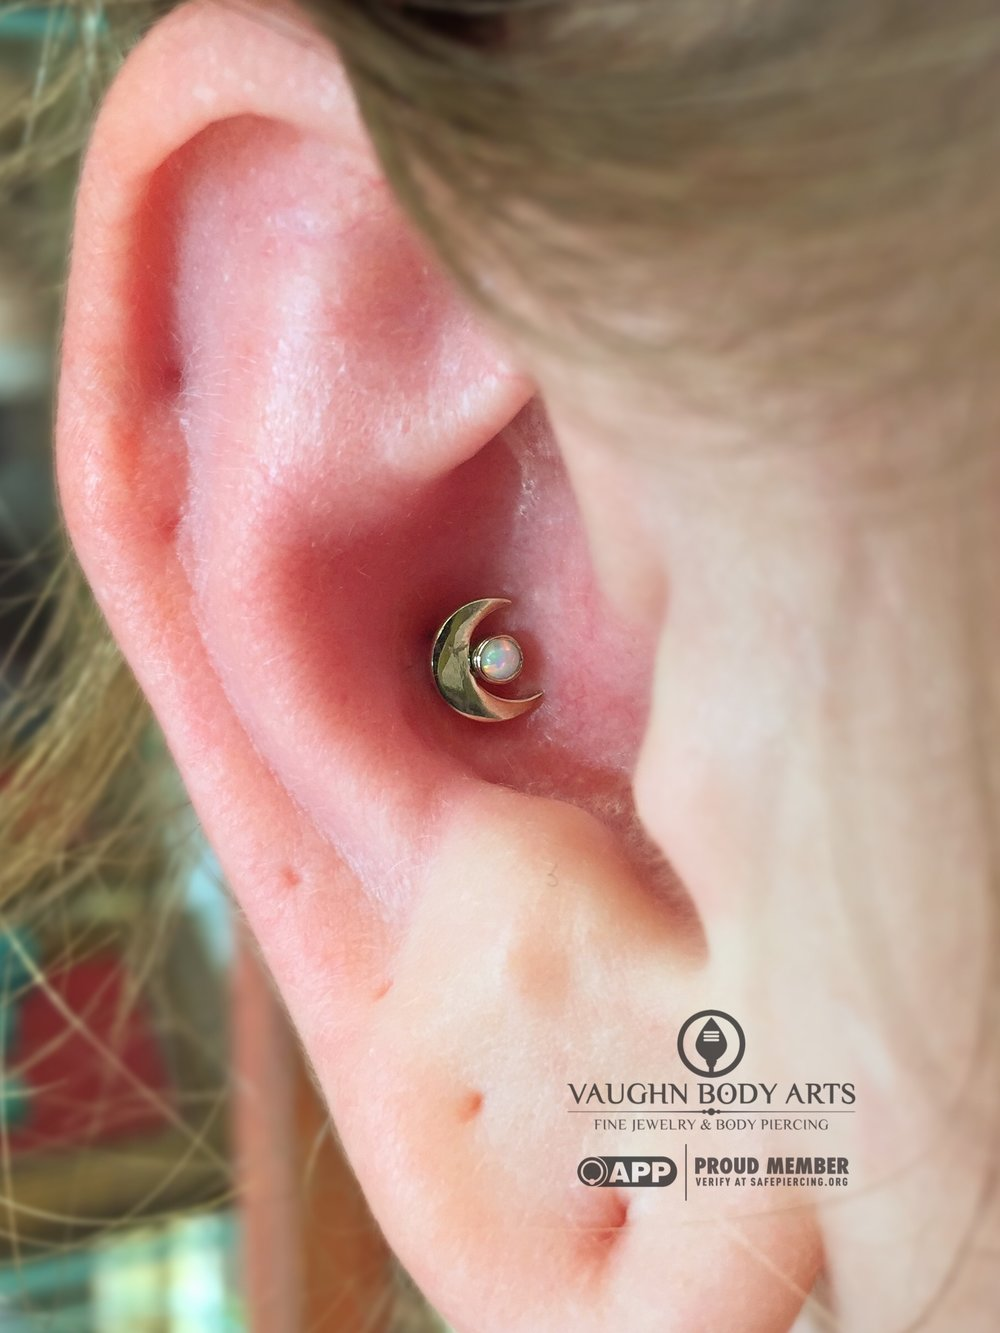 Conch piercing with an 18k white gold and opal crescent moon from Anatometal.